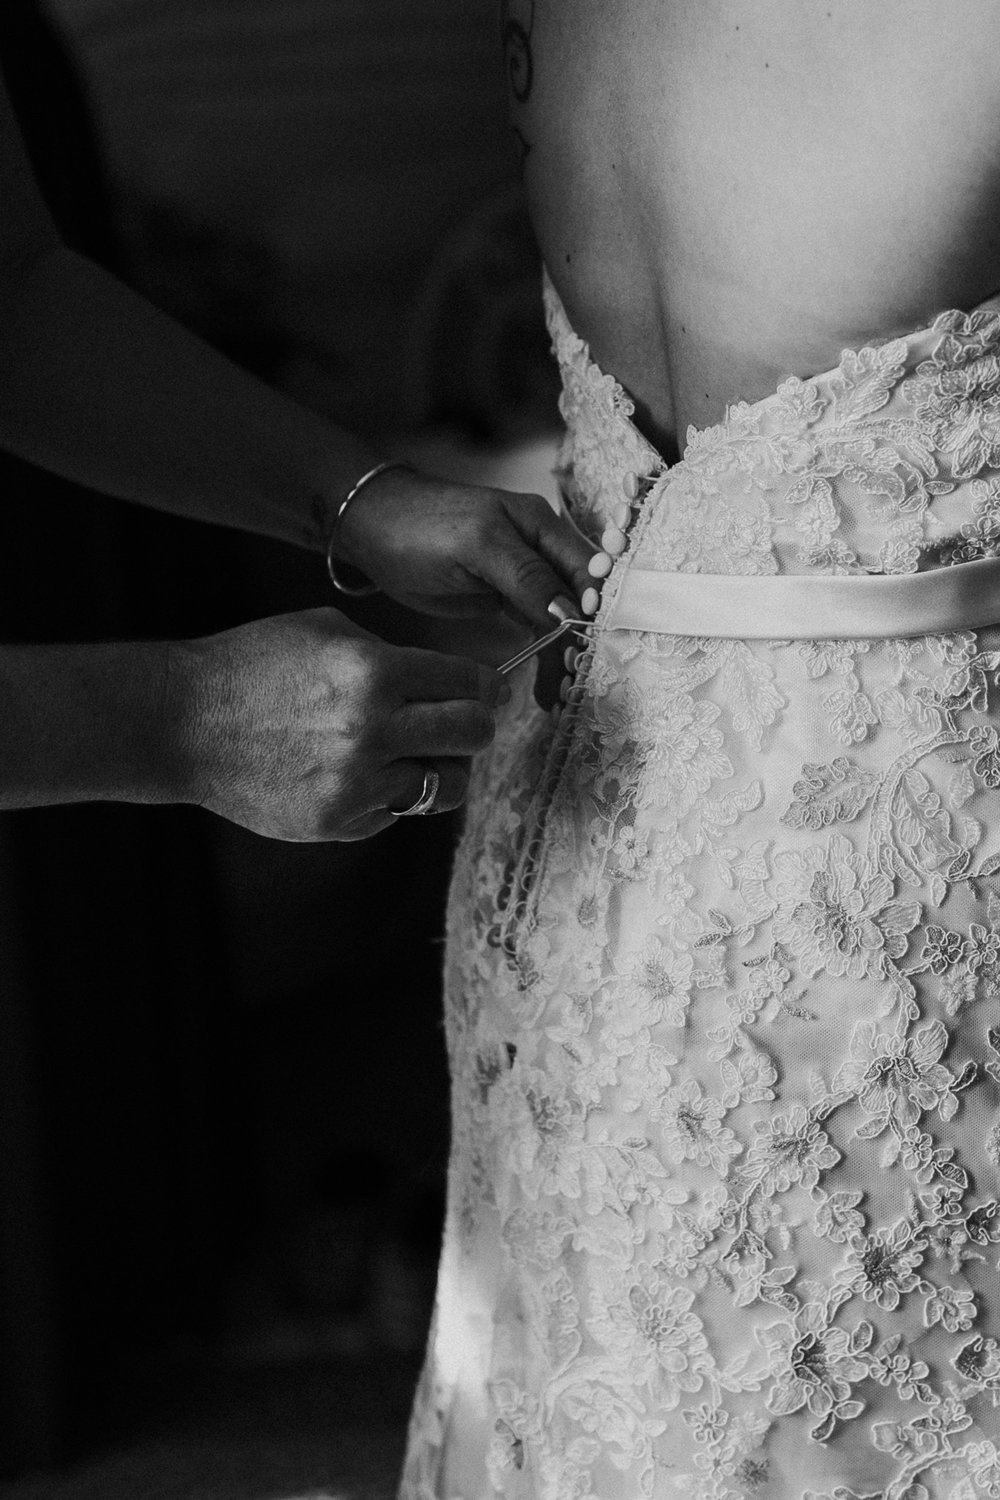 mom-ties-wedding-dress-black-and-white-photography